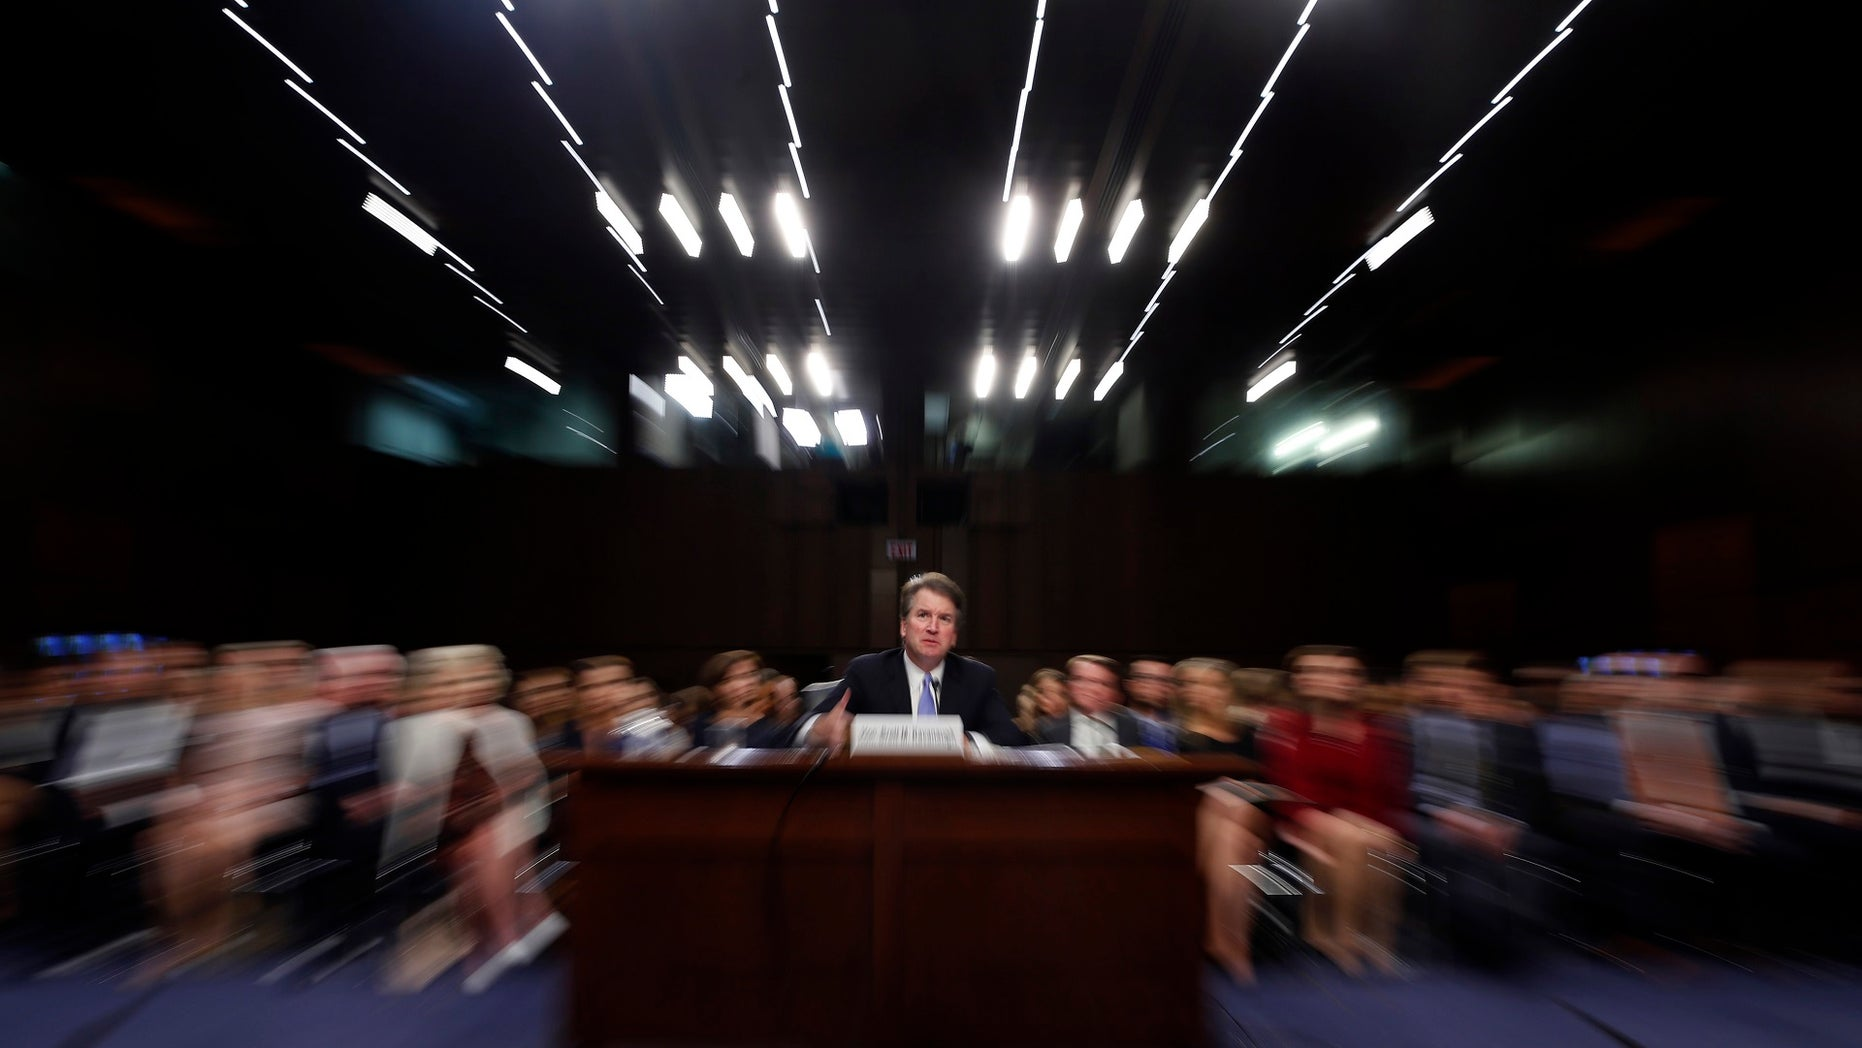 "FILE - In this Thursday, Sept. 6, 2018 file photo made with a slow shutter speed and a zoom lens, President Donald Trump's Supreme Court nominee, Brett Kavanaugh testifies before the Senate Judiciary Committee on Capitol Hill in Washington, for the third day of his confirmation hearing. On Thursday, Sept. 20, 2018, an attorney for Christine Blasey Ford said she would testify to the Senate next week about her accusation that Kavanaugh assaulted her when both were high school students if agreement can be reached to ""terms that are fair and which ensure her safety."" (AP Photo/Alex Brandon)"